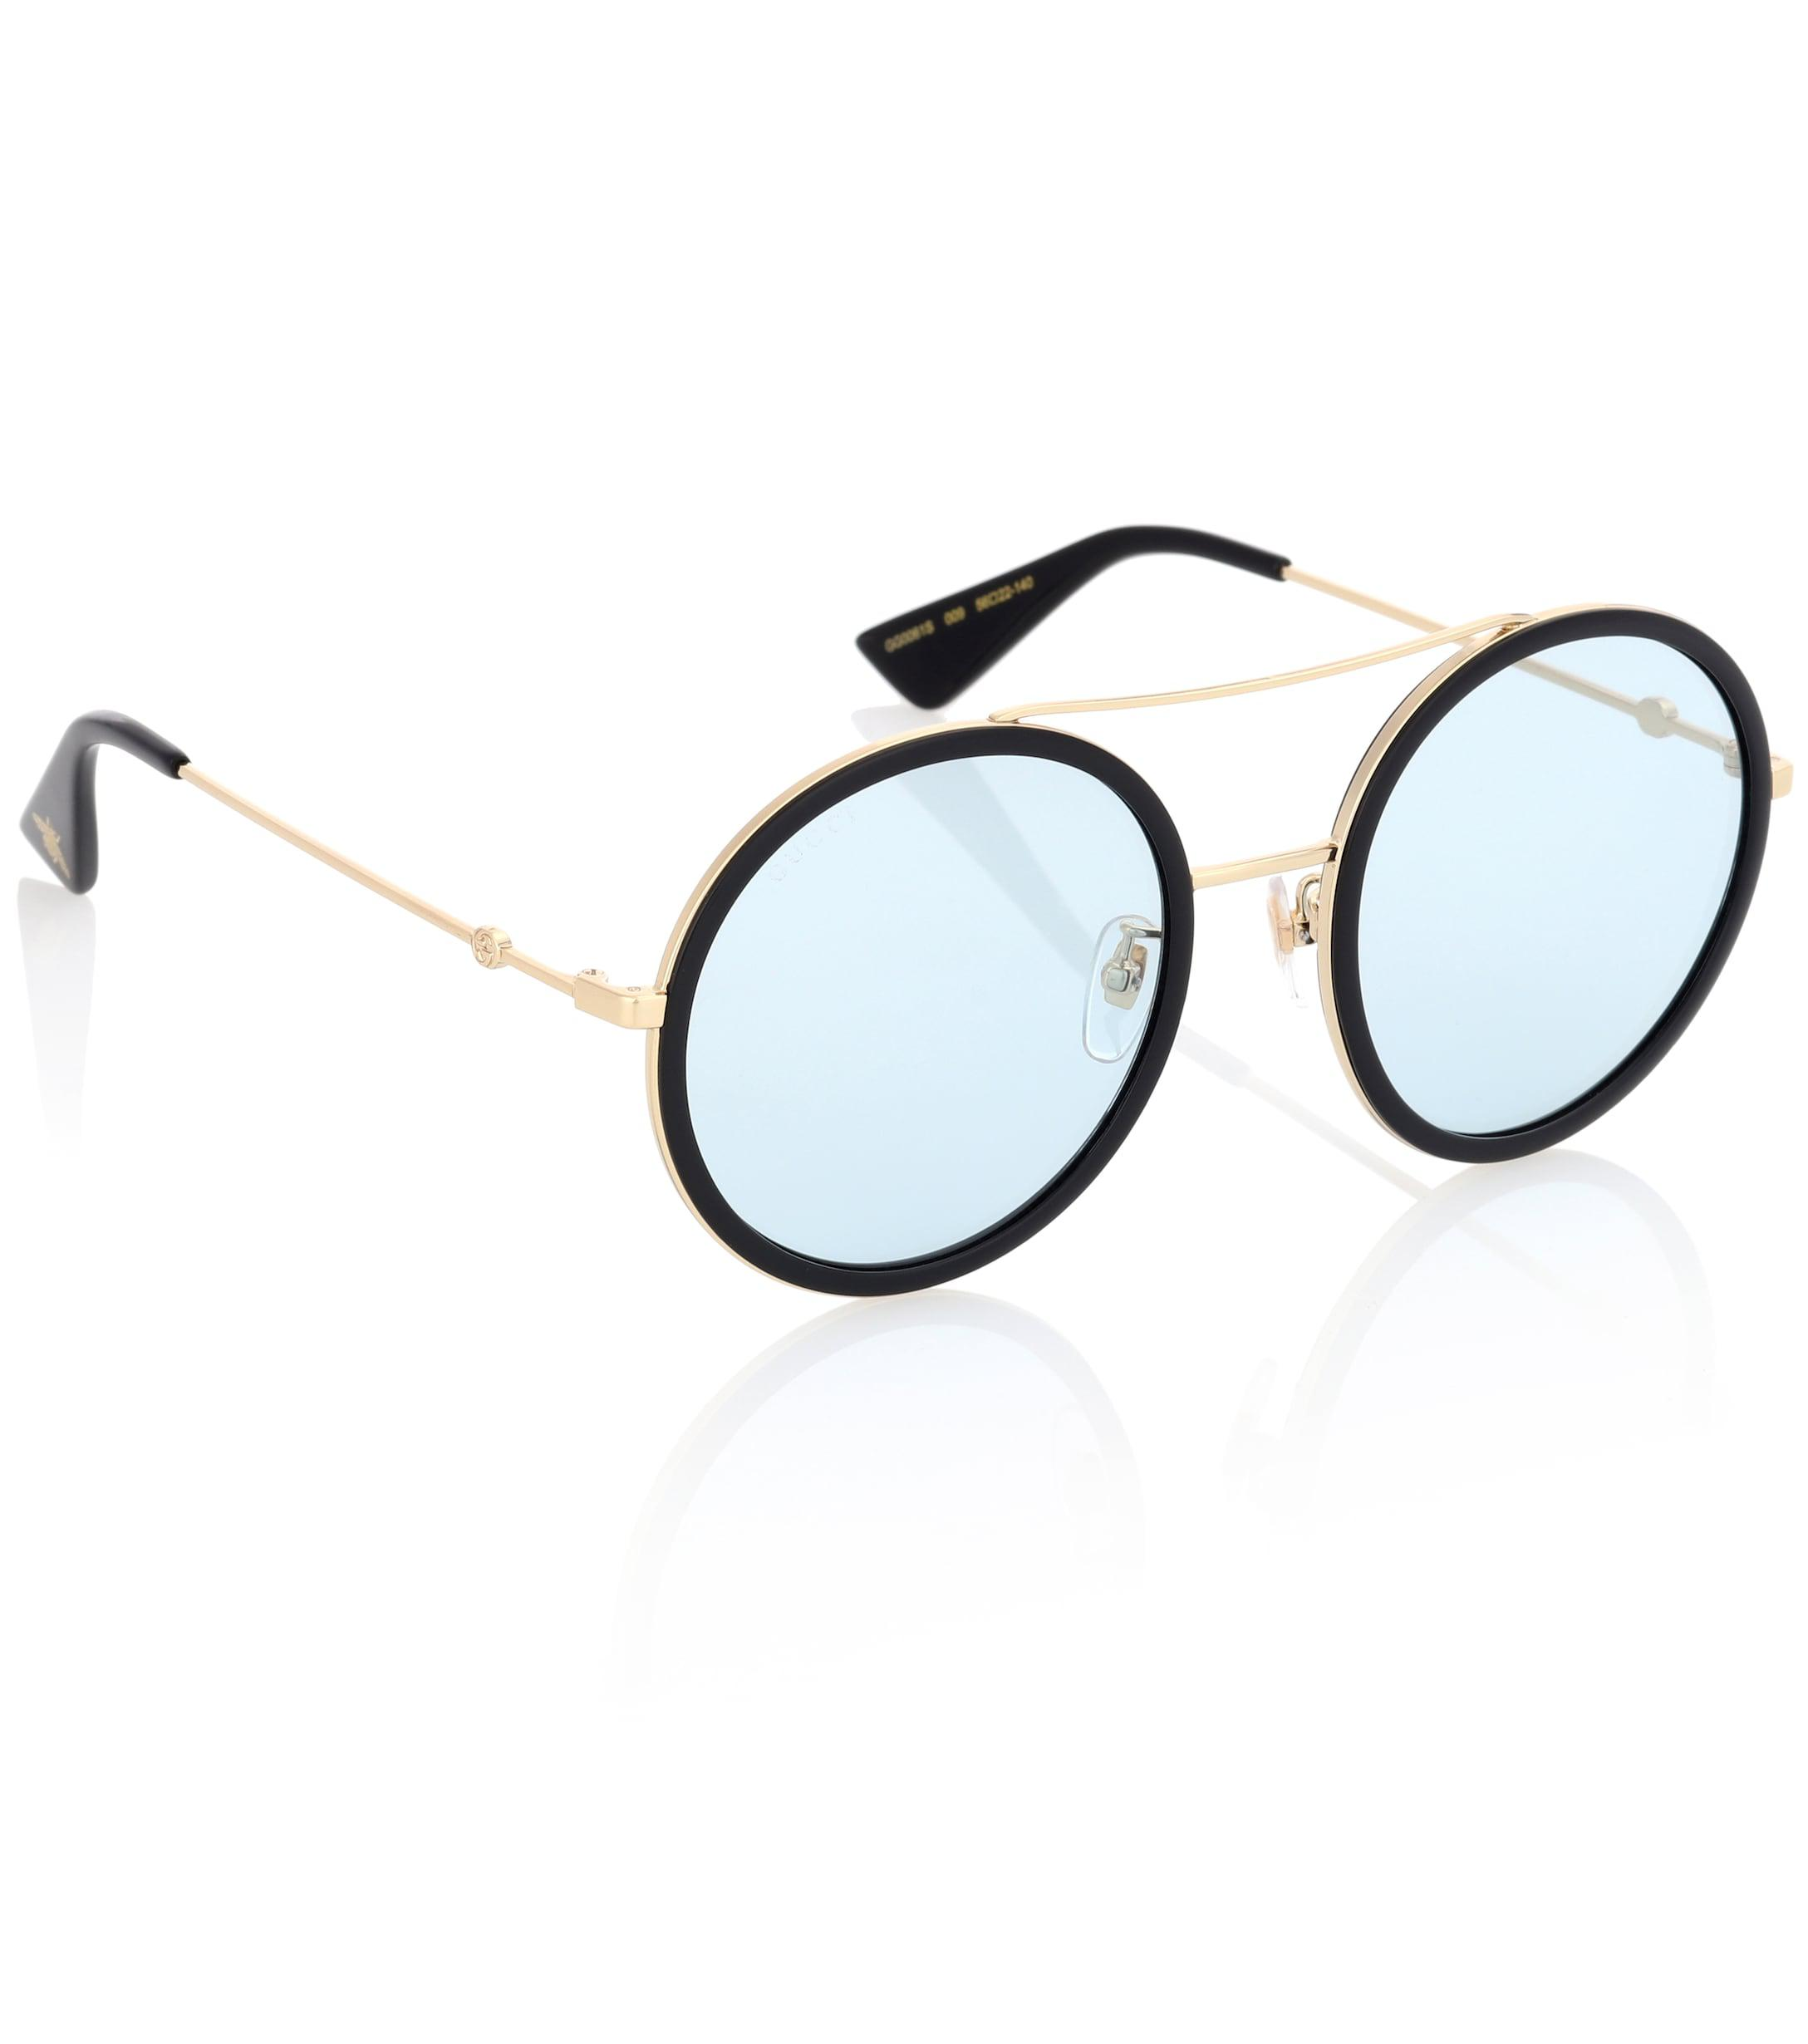 731e4fd9125 Gucci Exclusive To Mytheresa.com – Round Sunglasses in Black - Lyst